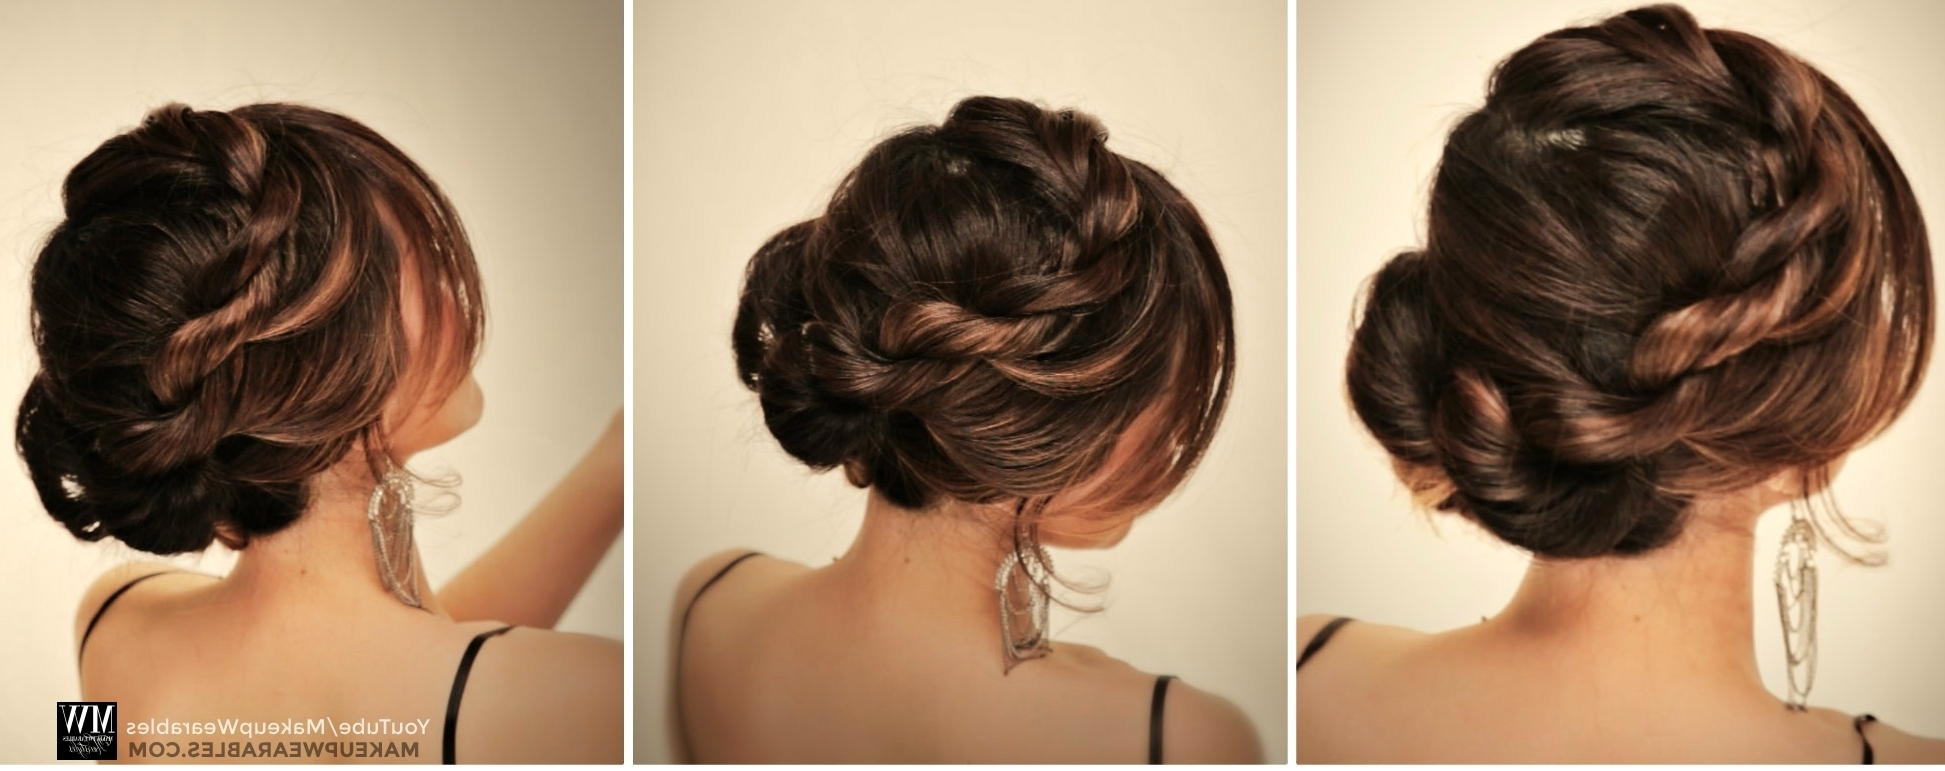 How To: 5 Amazingly Cute + Easy Hairstyles With A Simple Twist With Regard To Easy Do It Yourself Updo Hairstyles For Medium Length Hair (View 11 of 15)